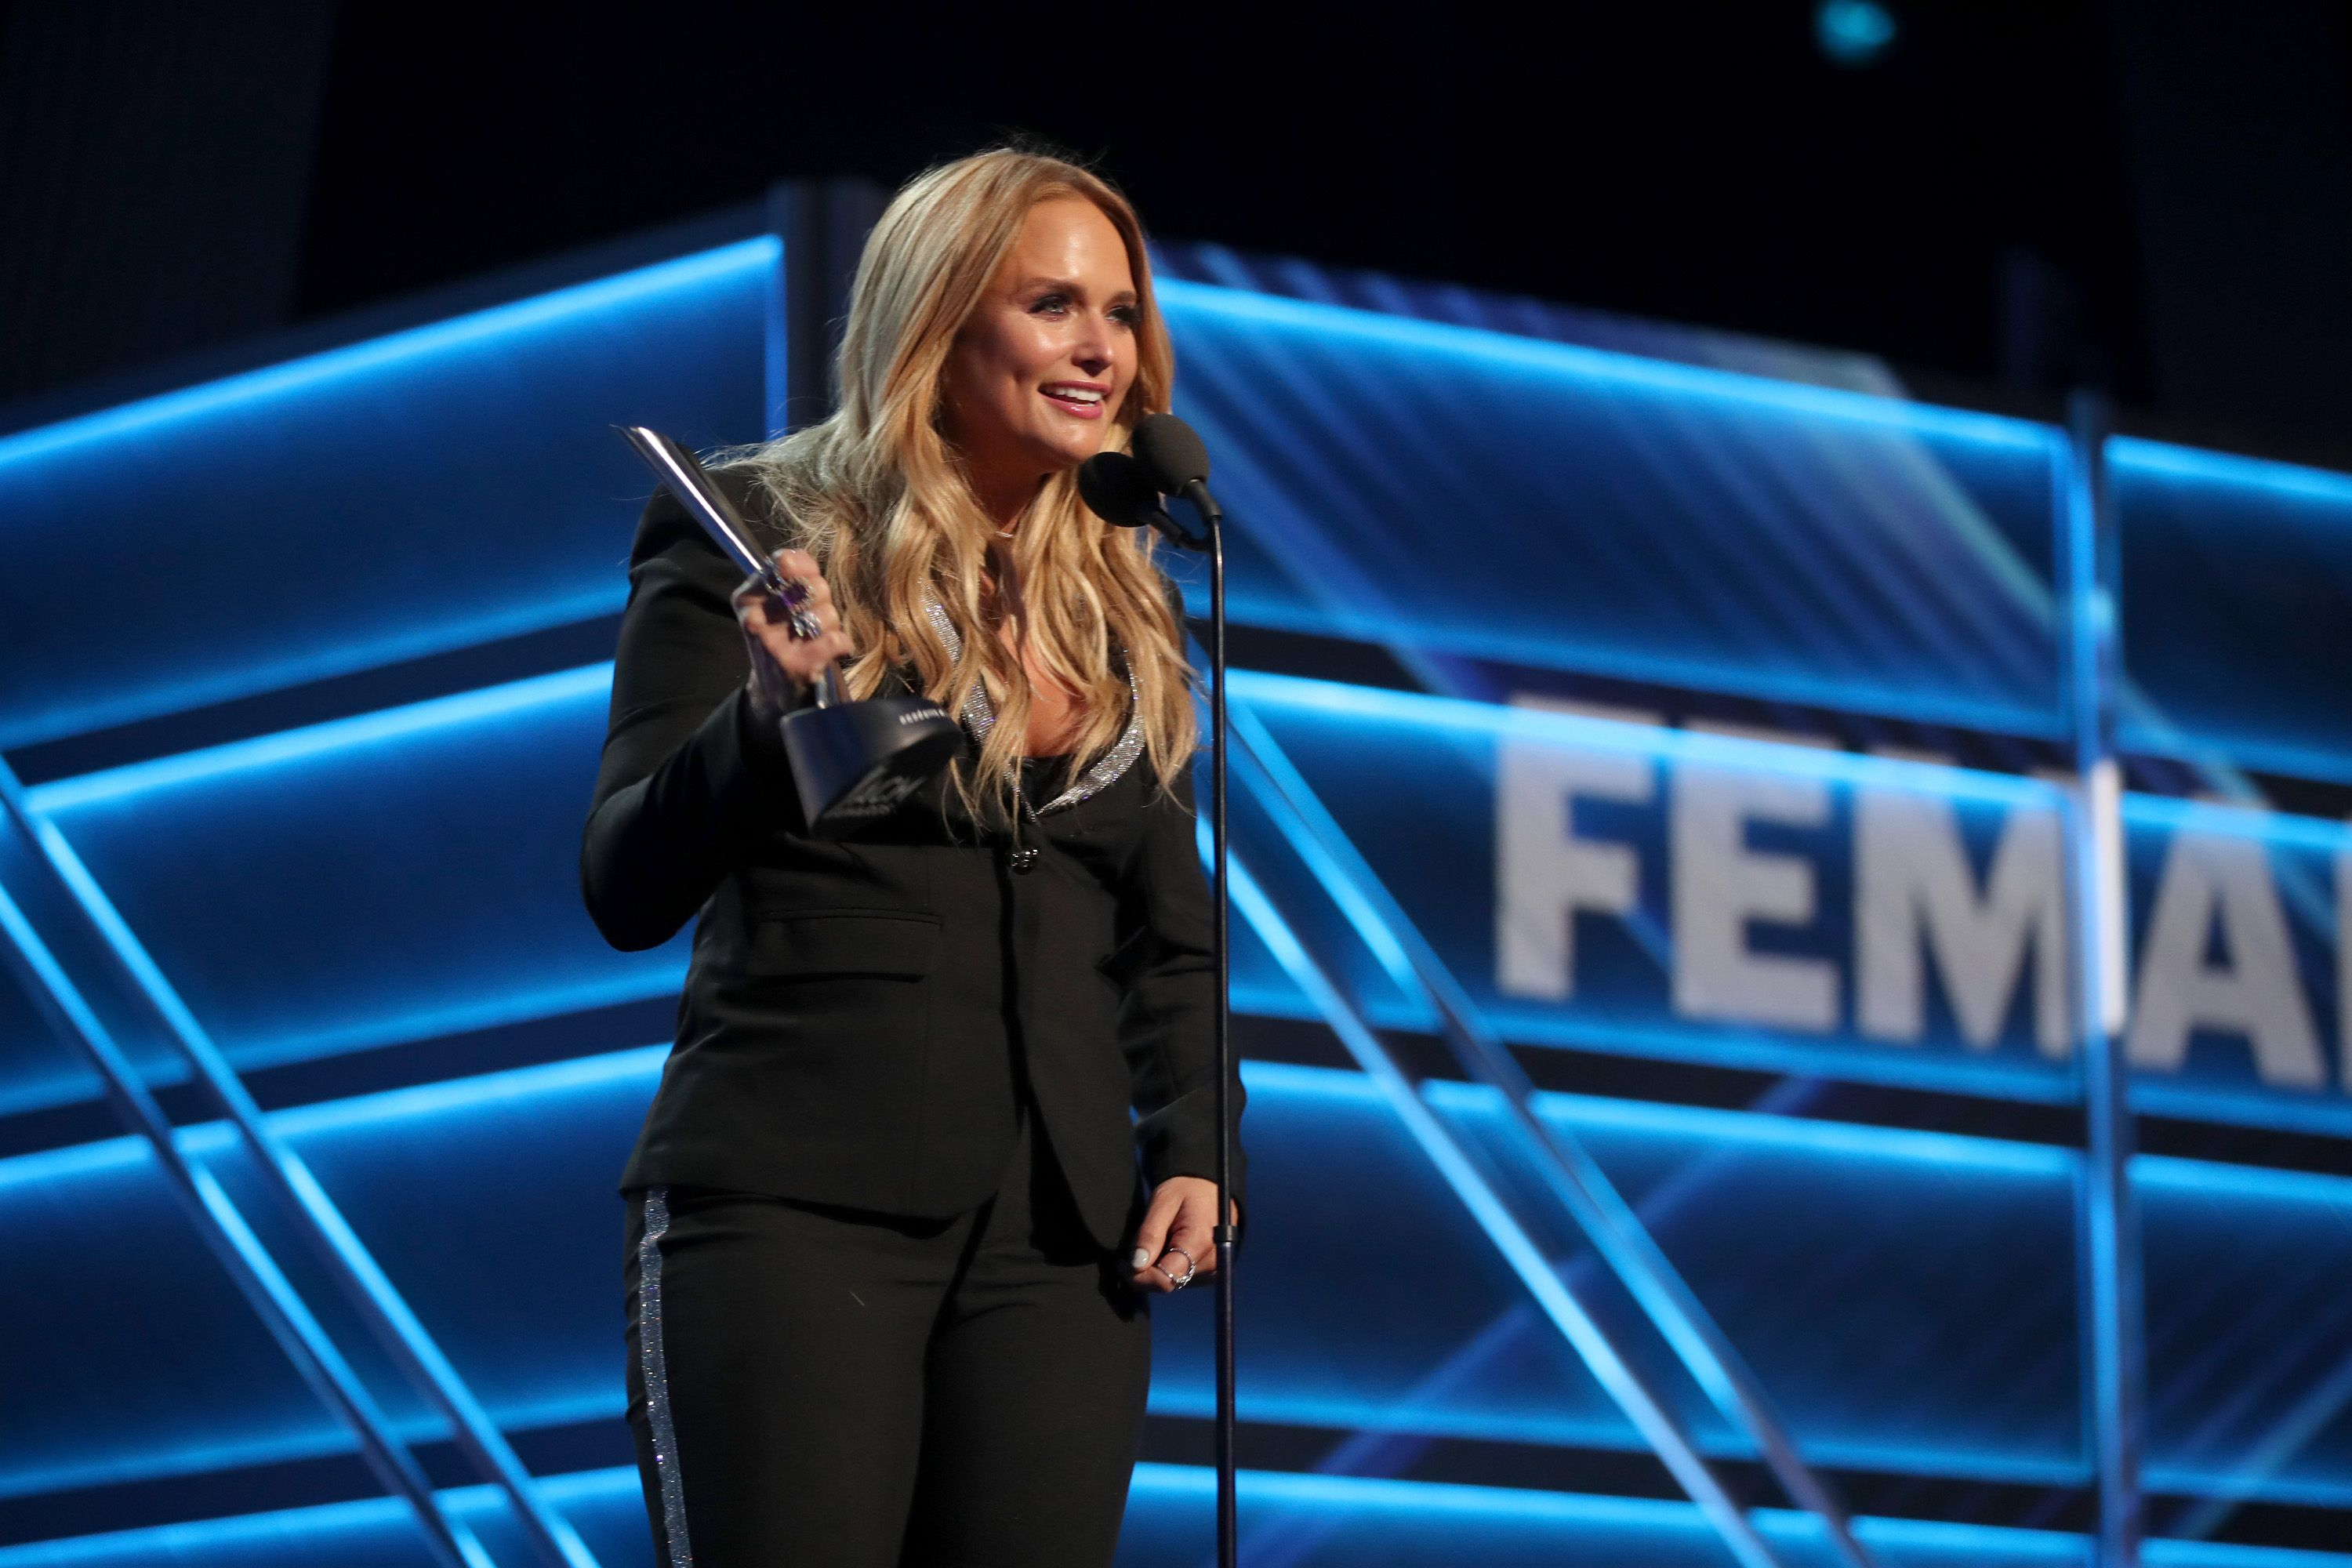 Miranda lambert takes home trophy for acm female vocalist of the